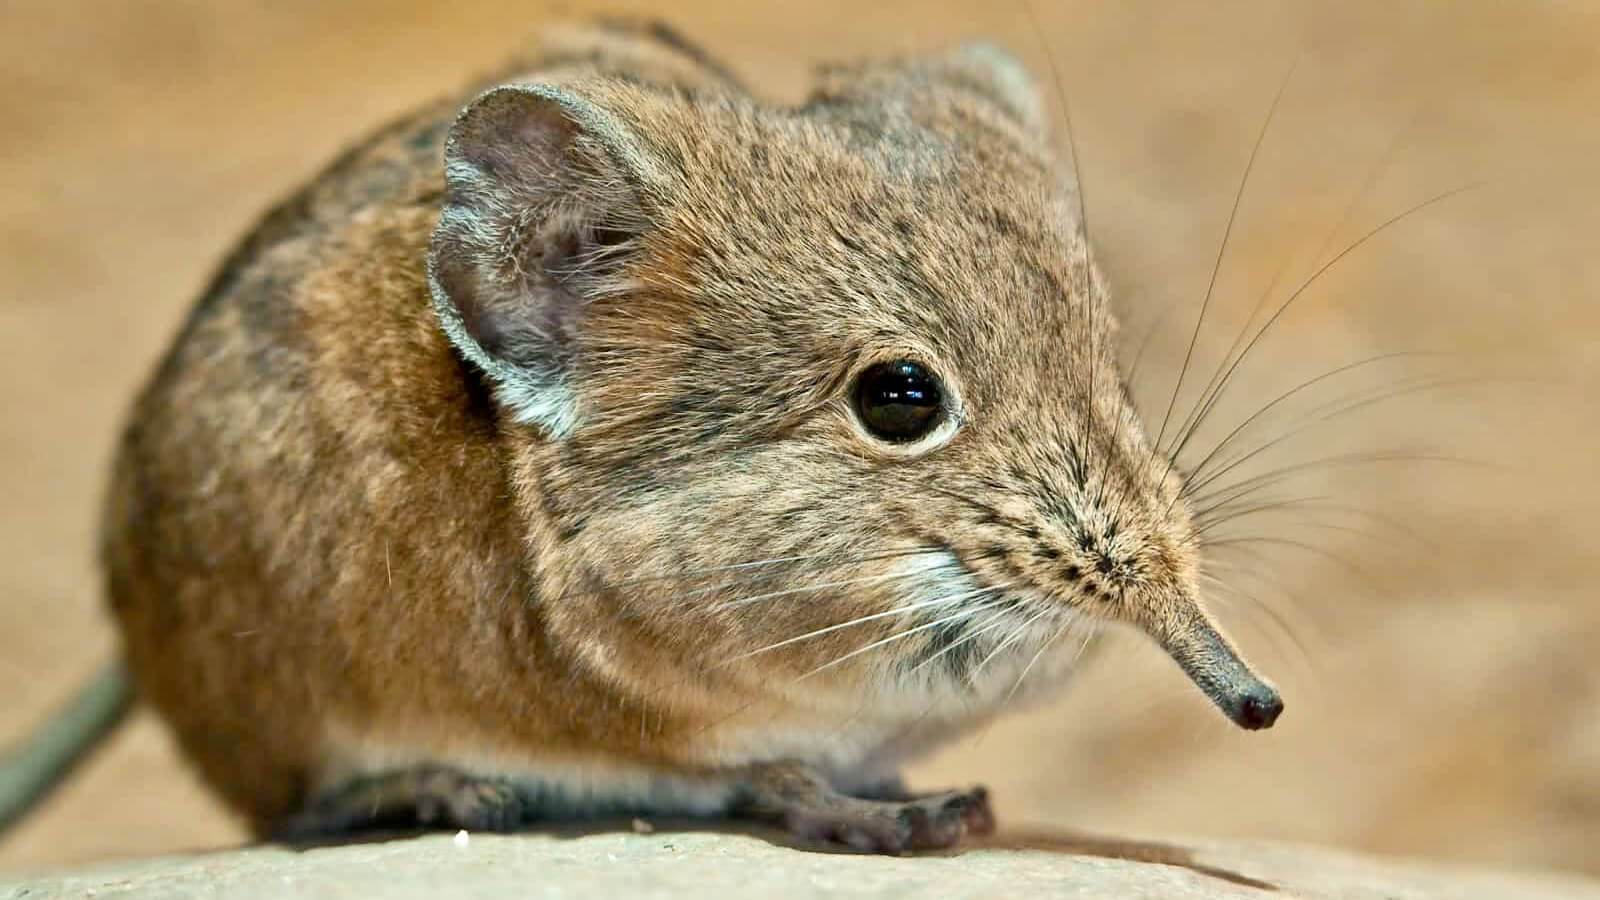 Elephant Shrew the little five africa  small five africa little five south africa small five south africa little 5 africa africa little 5 little 5 south africa little five africa